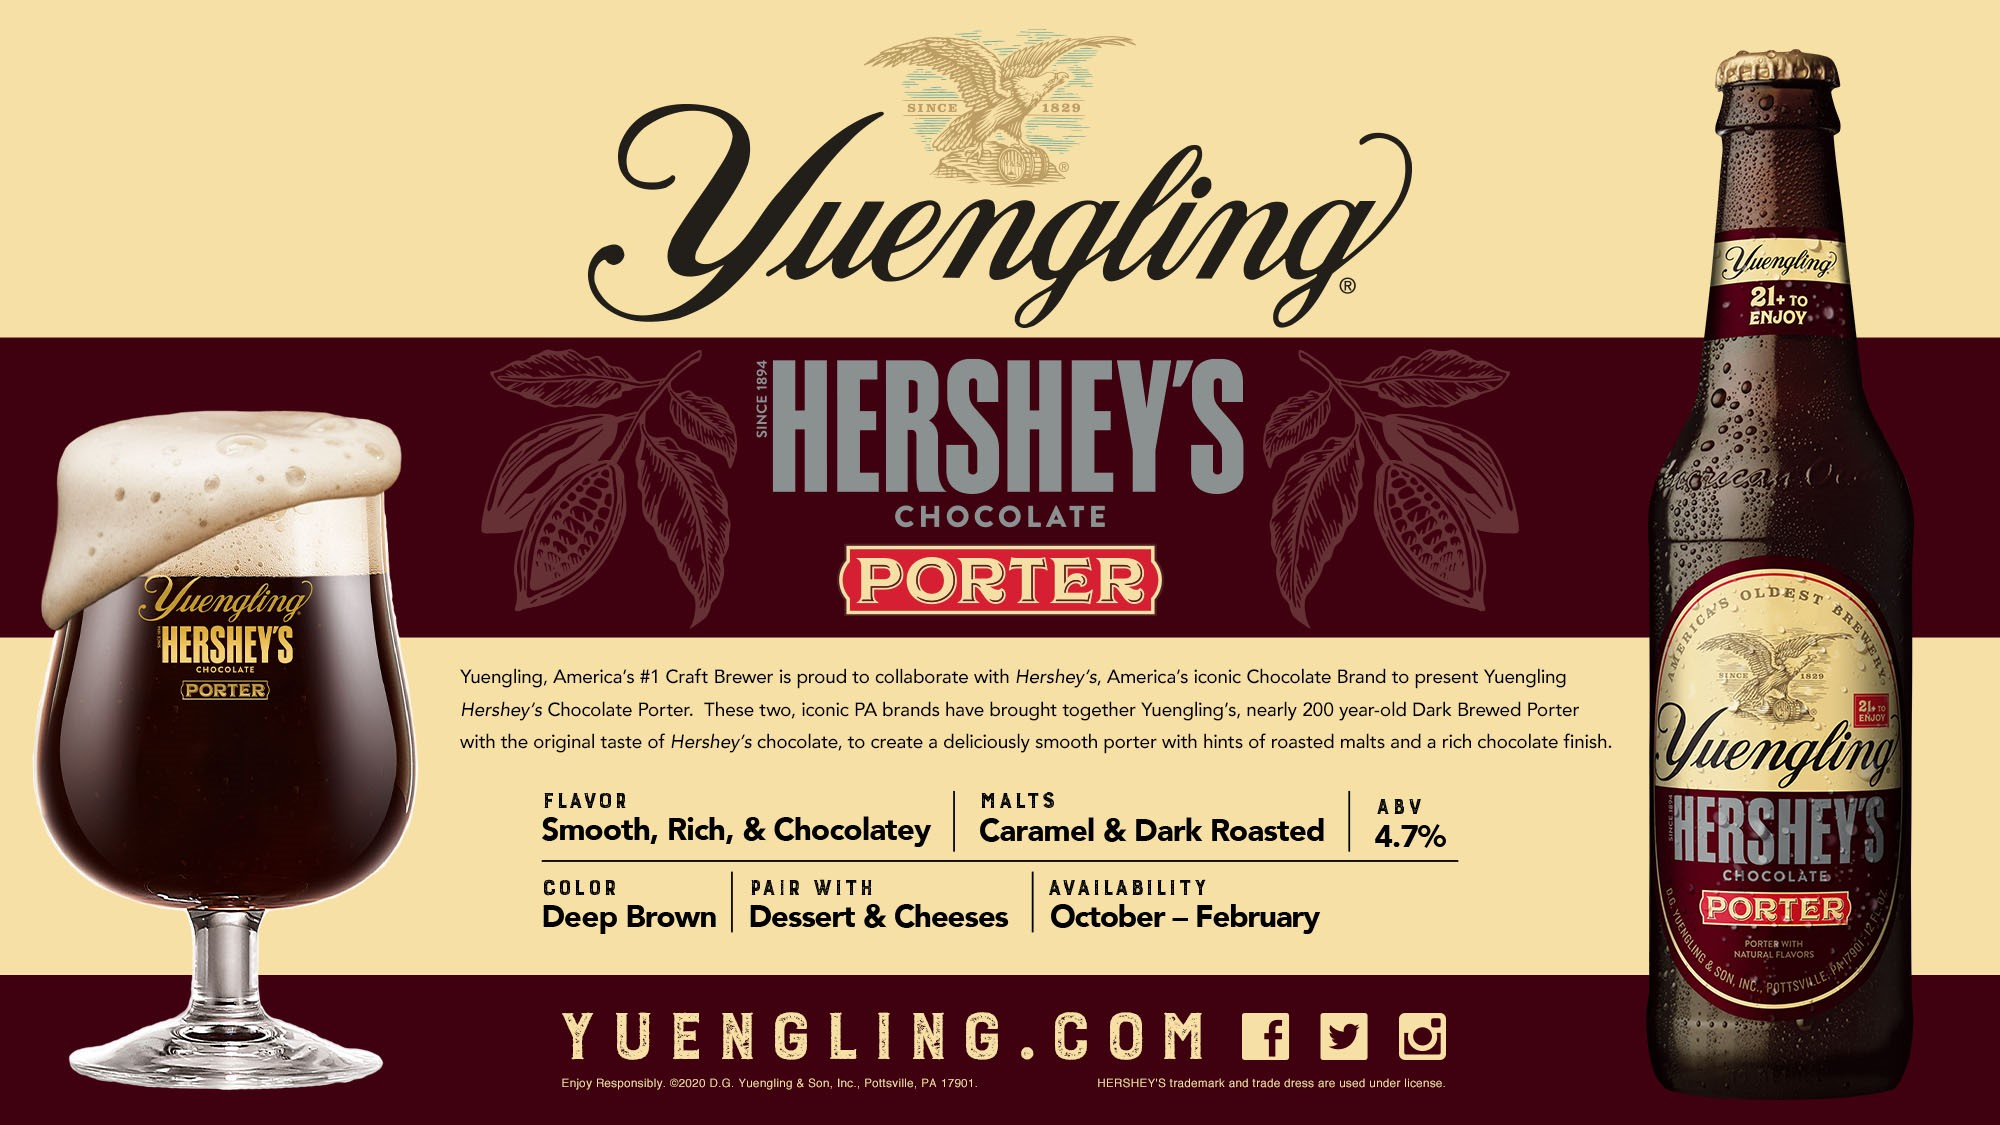 NEW! Yuengling Hershey's Chocolate Porter